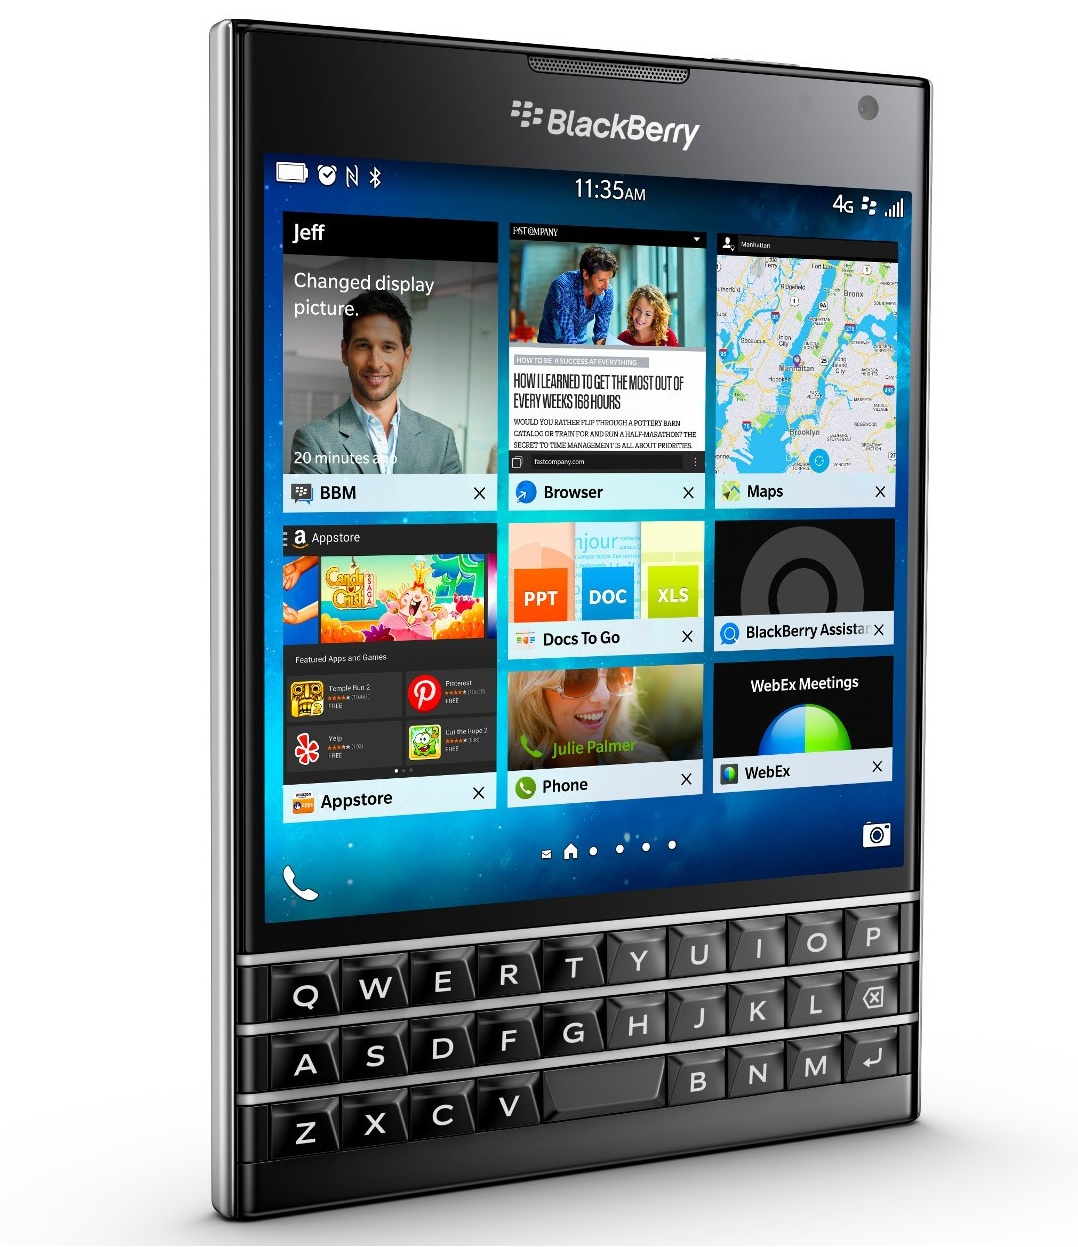 BlackBerry Passport - Q100